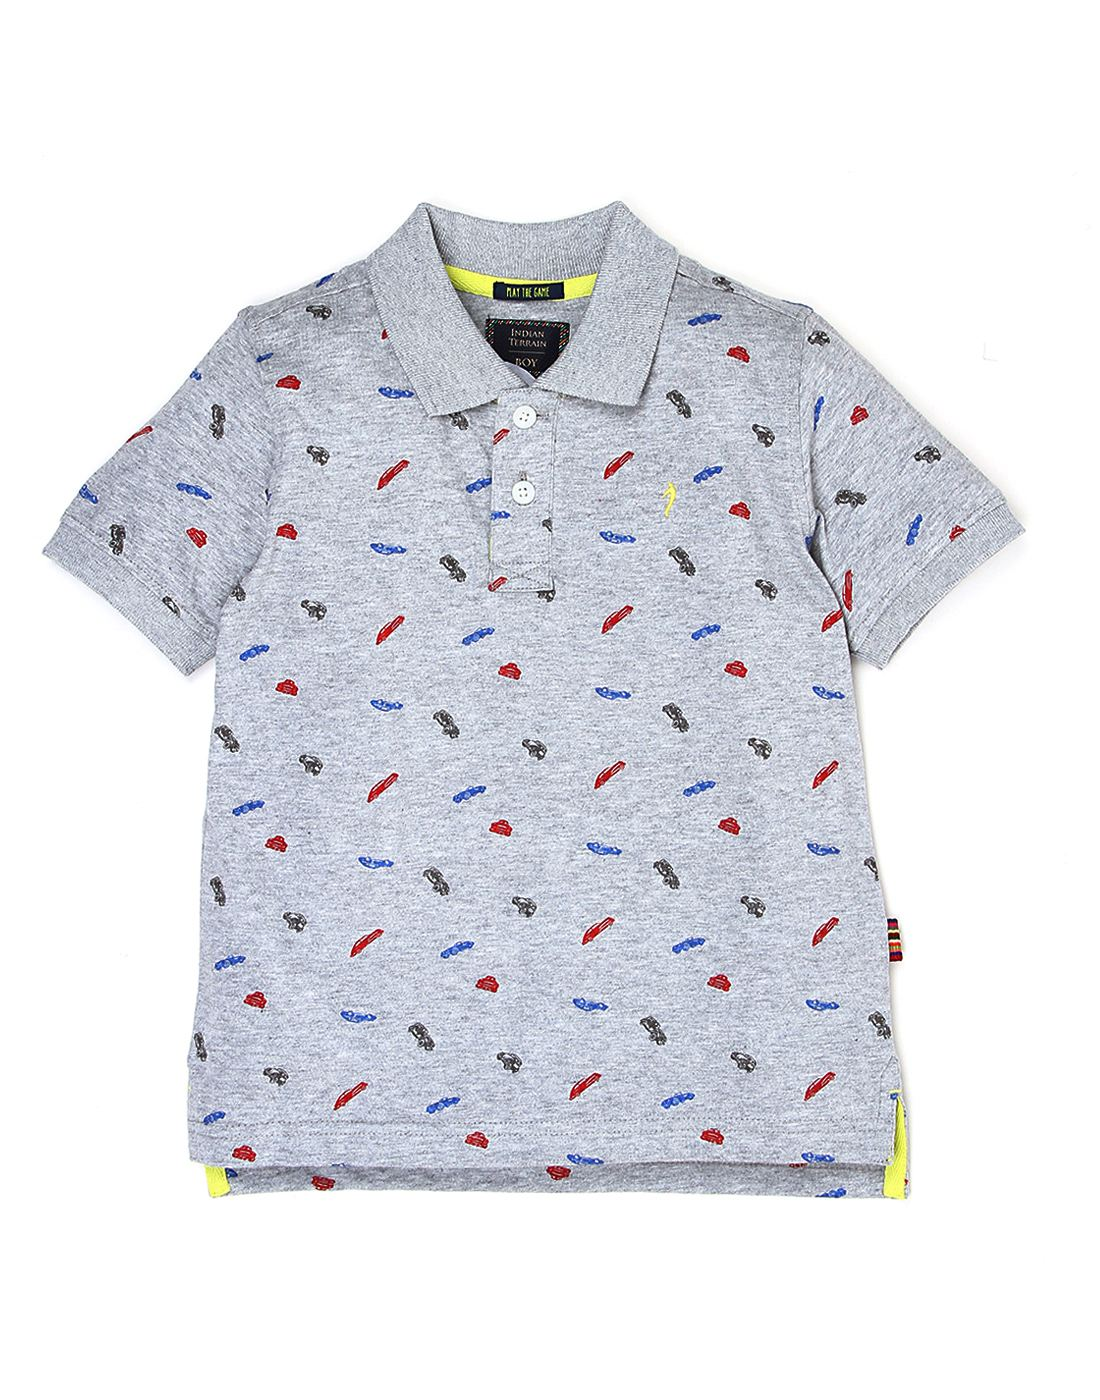 Indian Terrain Boys Grey Printed T-Shirt